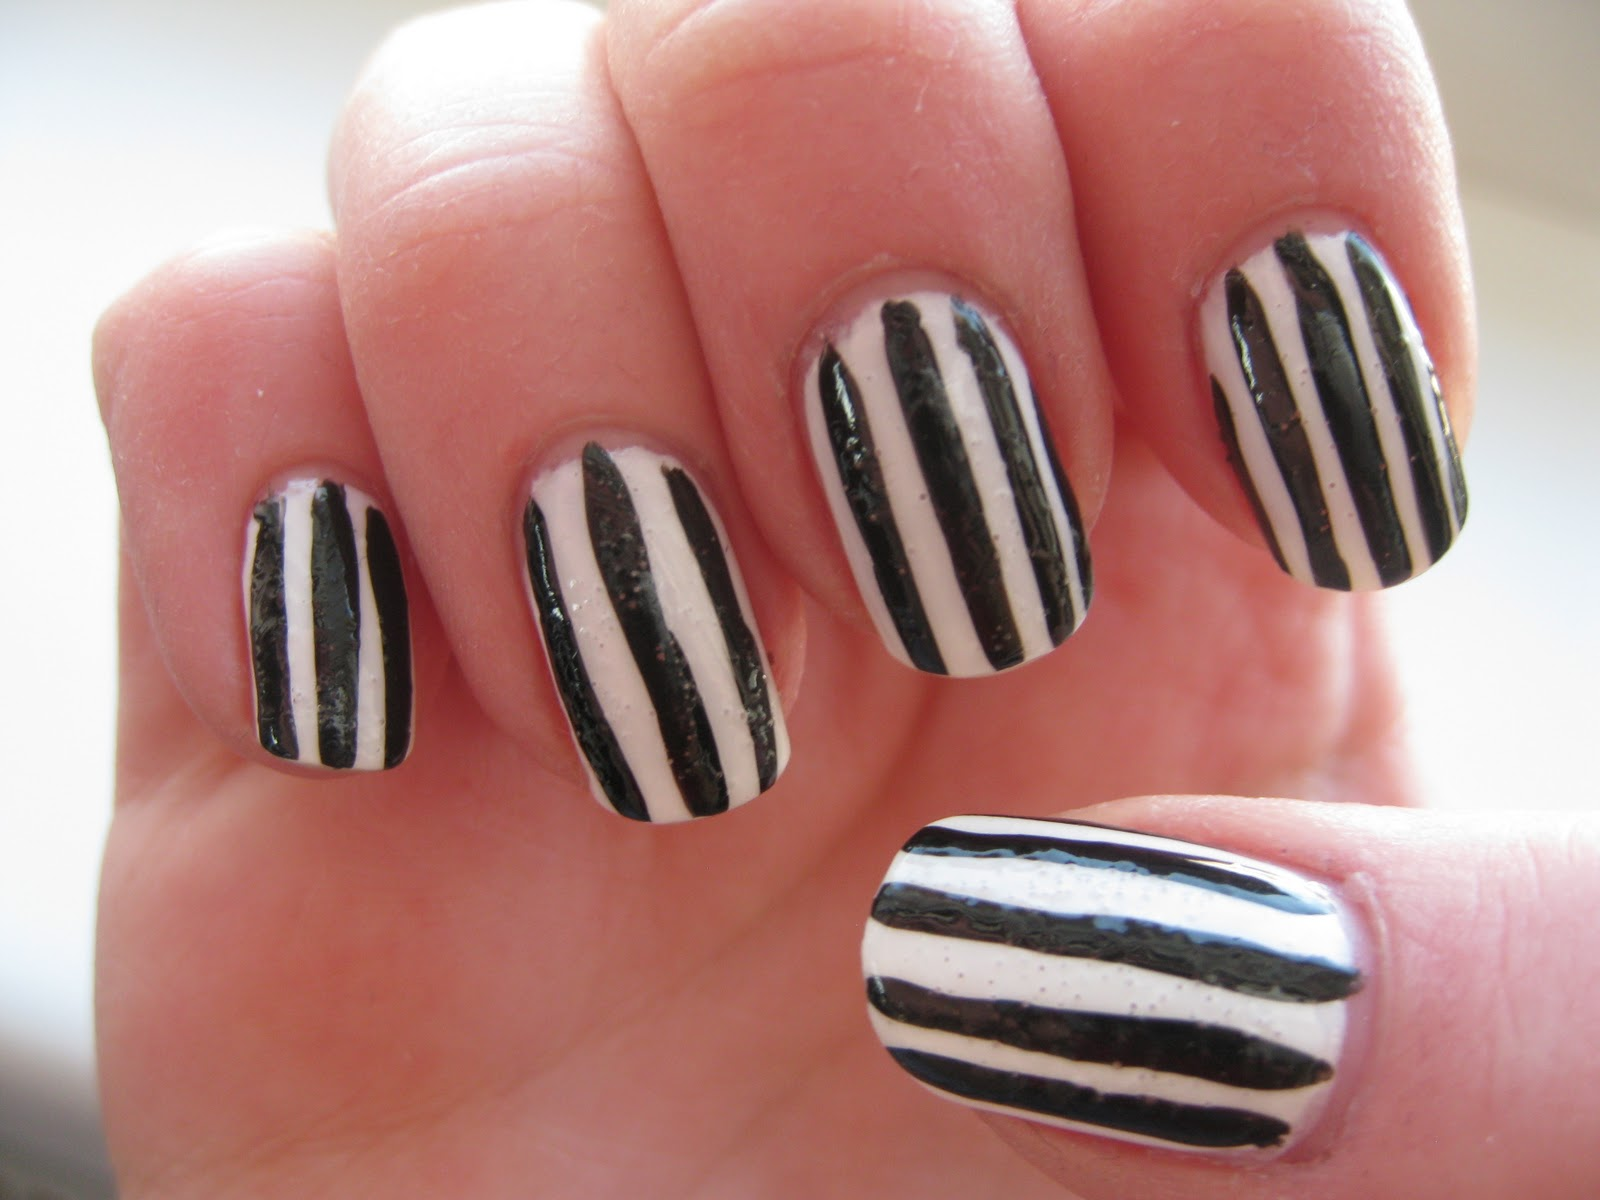 Sandra\'s Nails (not active anymore): Black and White Striped Nails